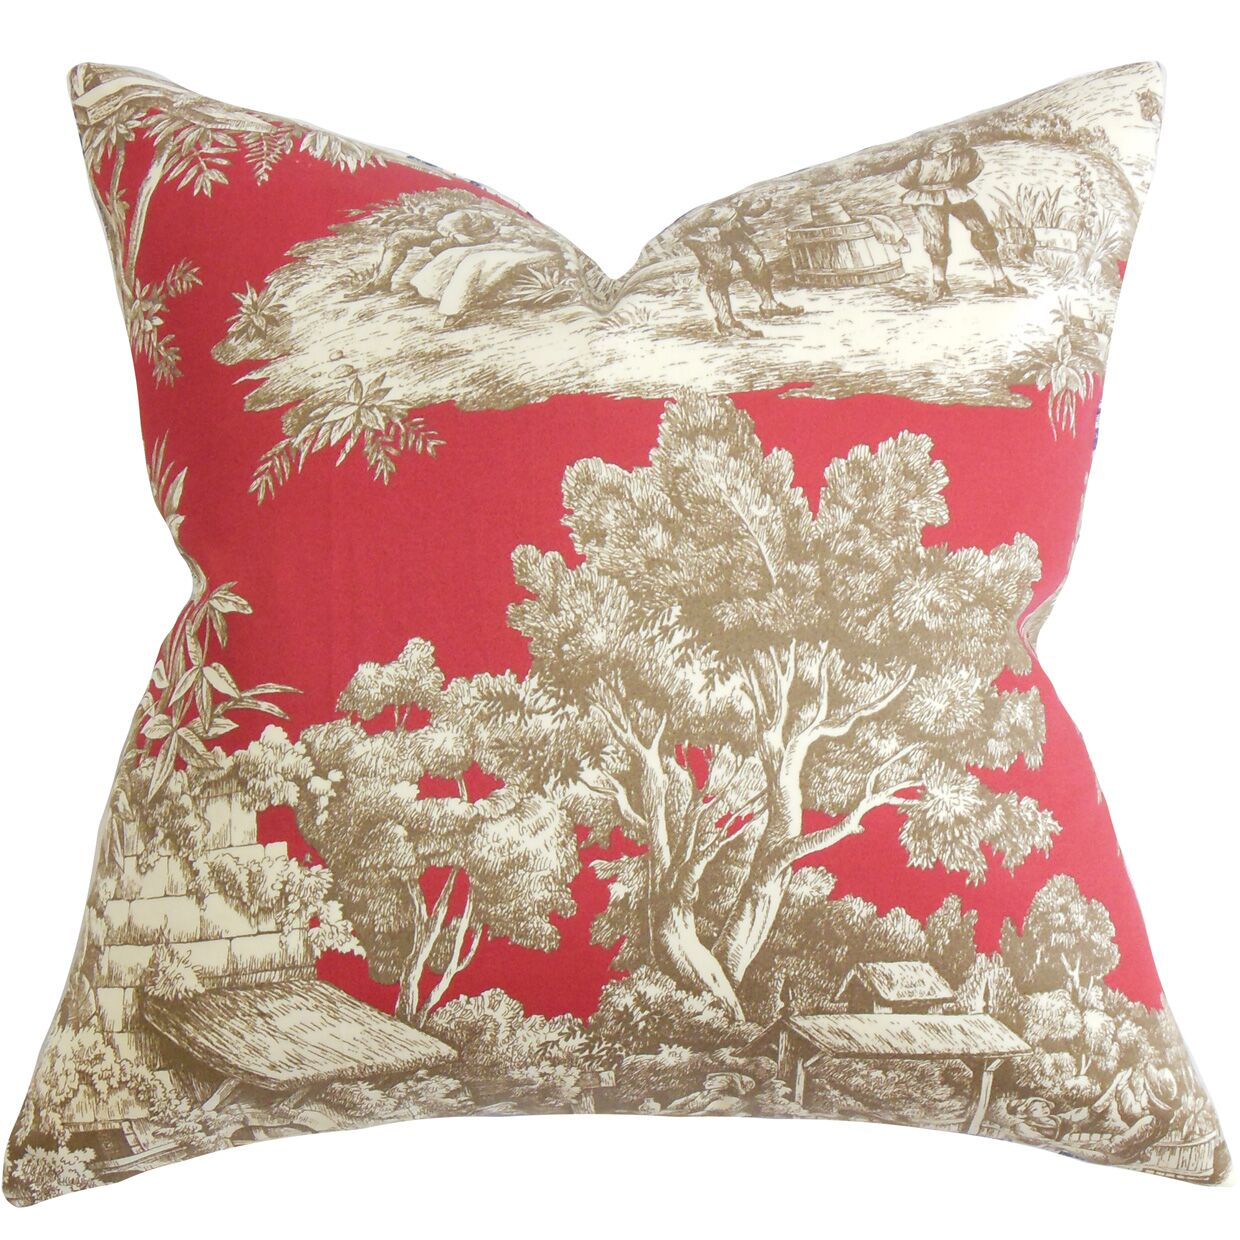 Wellhead Toile Bedding Sham Color: Red, Size: King